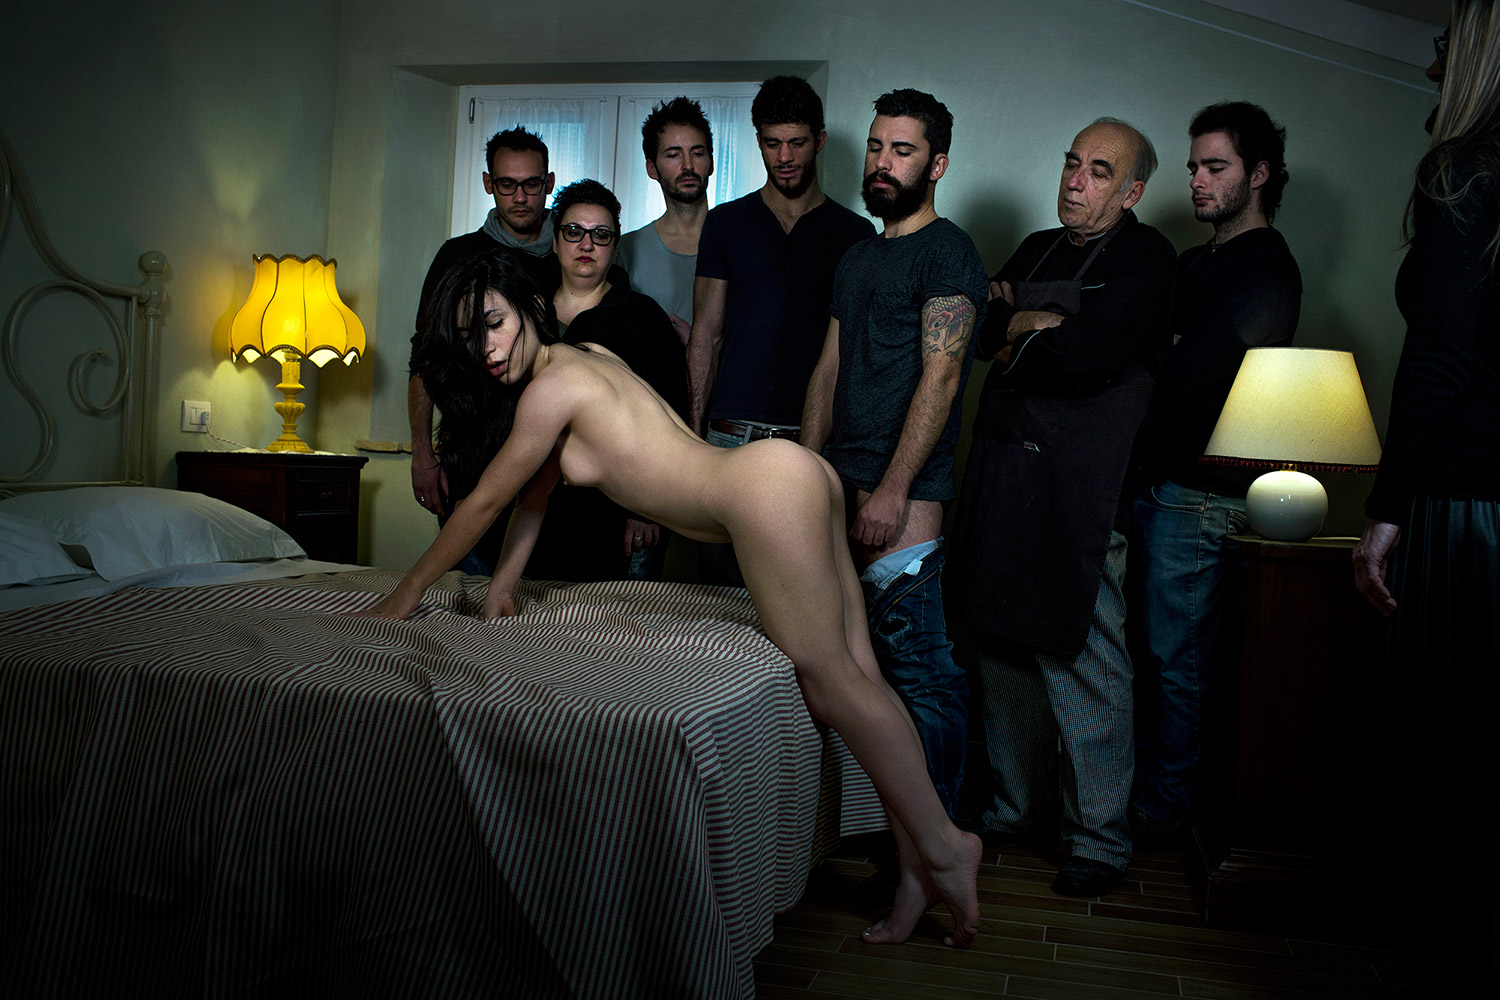 Marco Onofri, Followers - watching woman leaning over bed